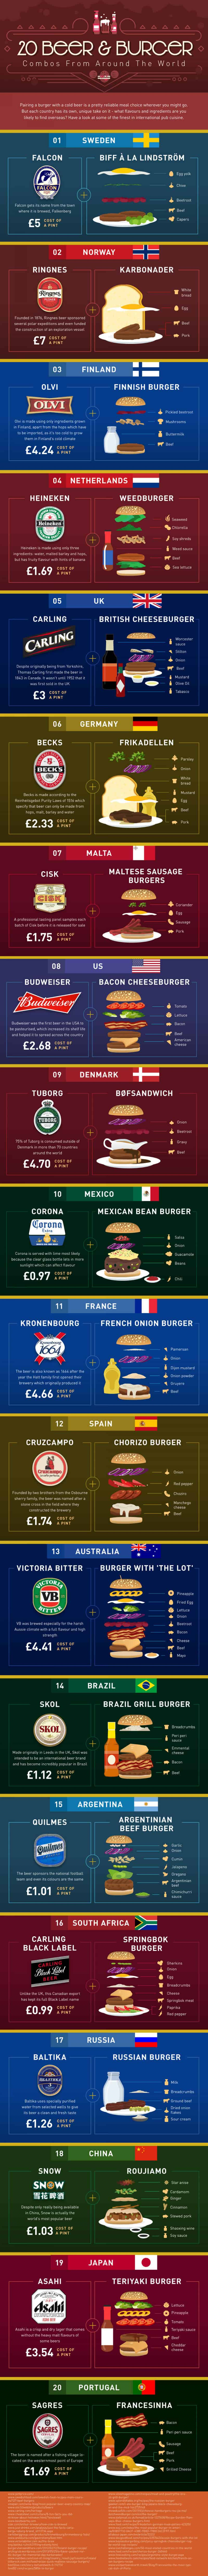 Eat & Drink Edition: 20 Countries With The Best Beer & Burger Combos